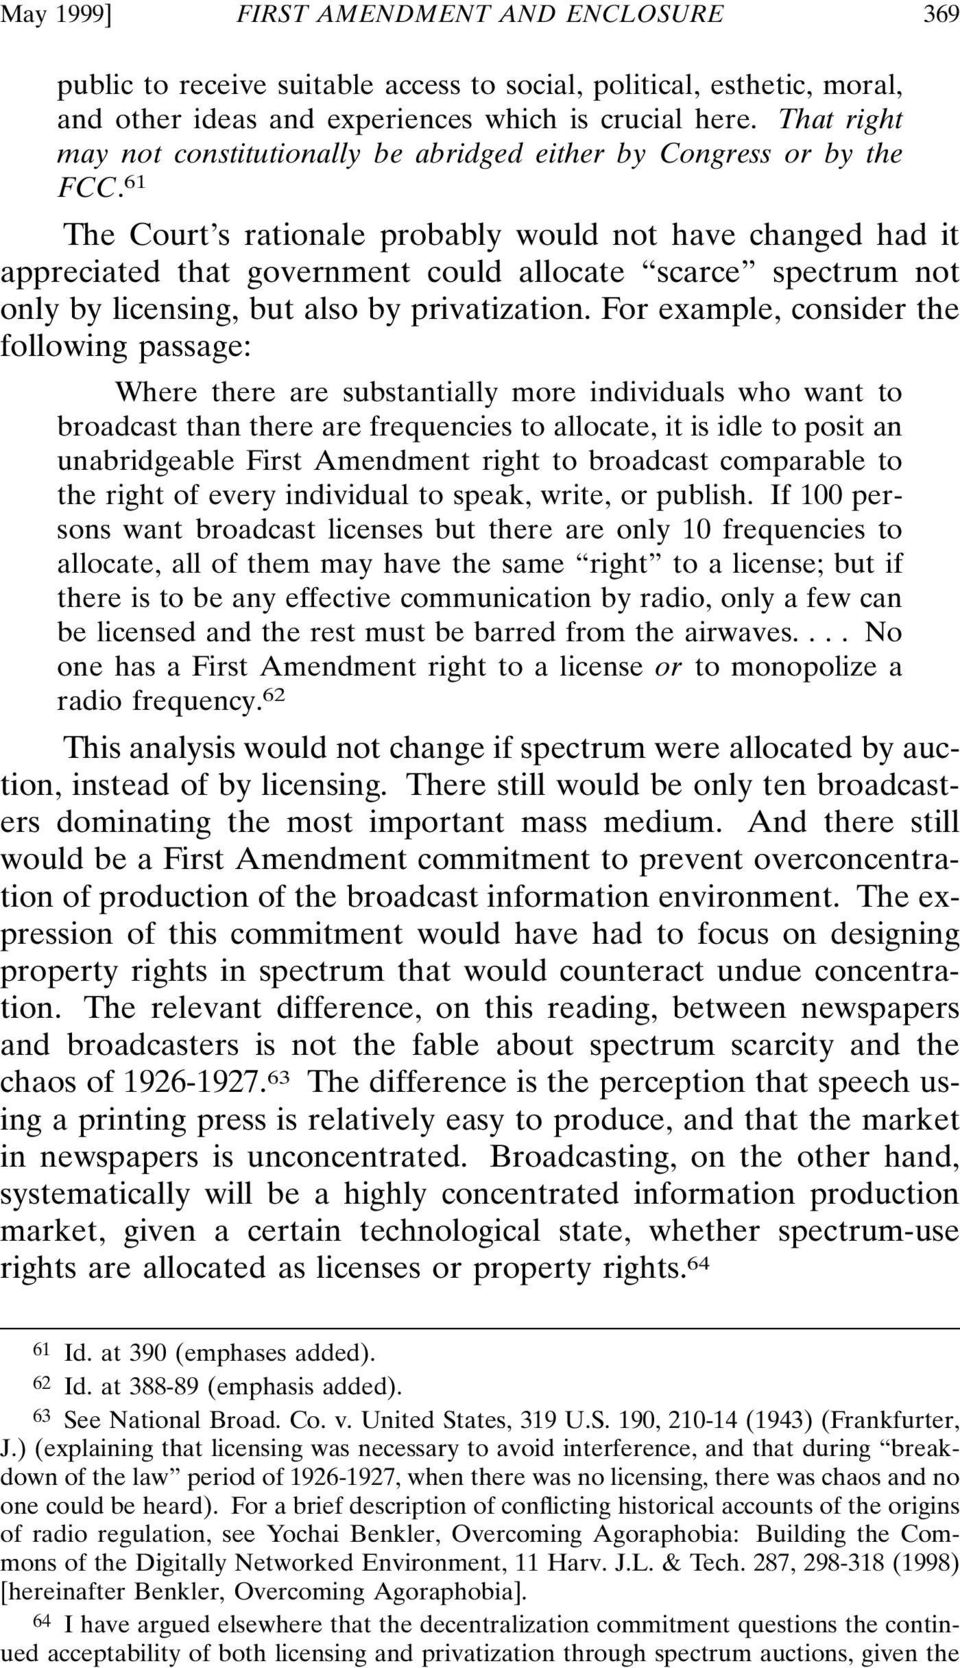 61 The Court s rationale probably would not have changed had it appreciated that government could allocate scarce spectrum not only by licensing, but also by privatization.